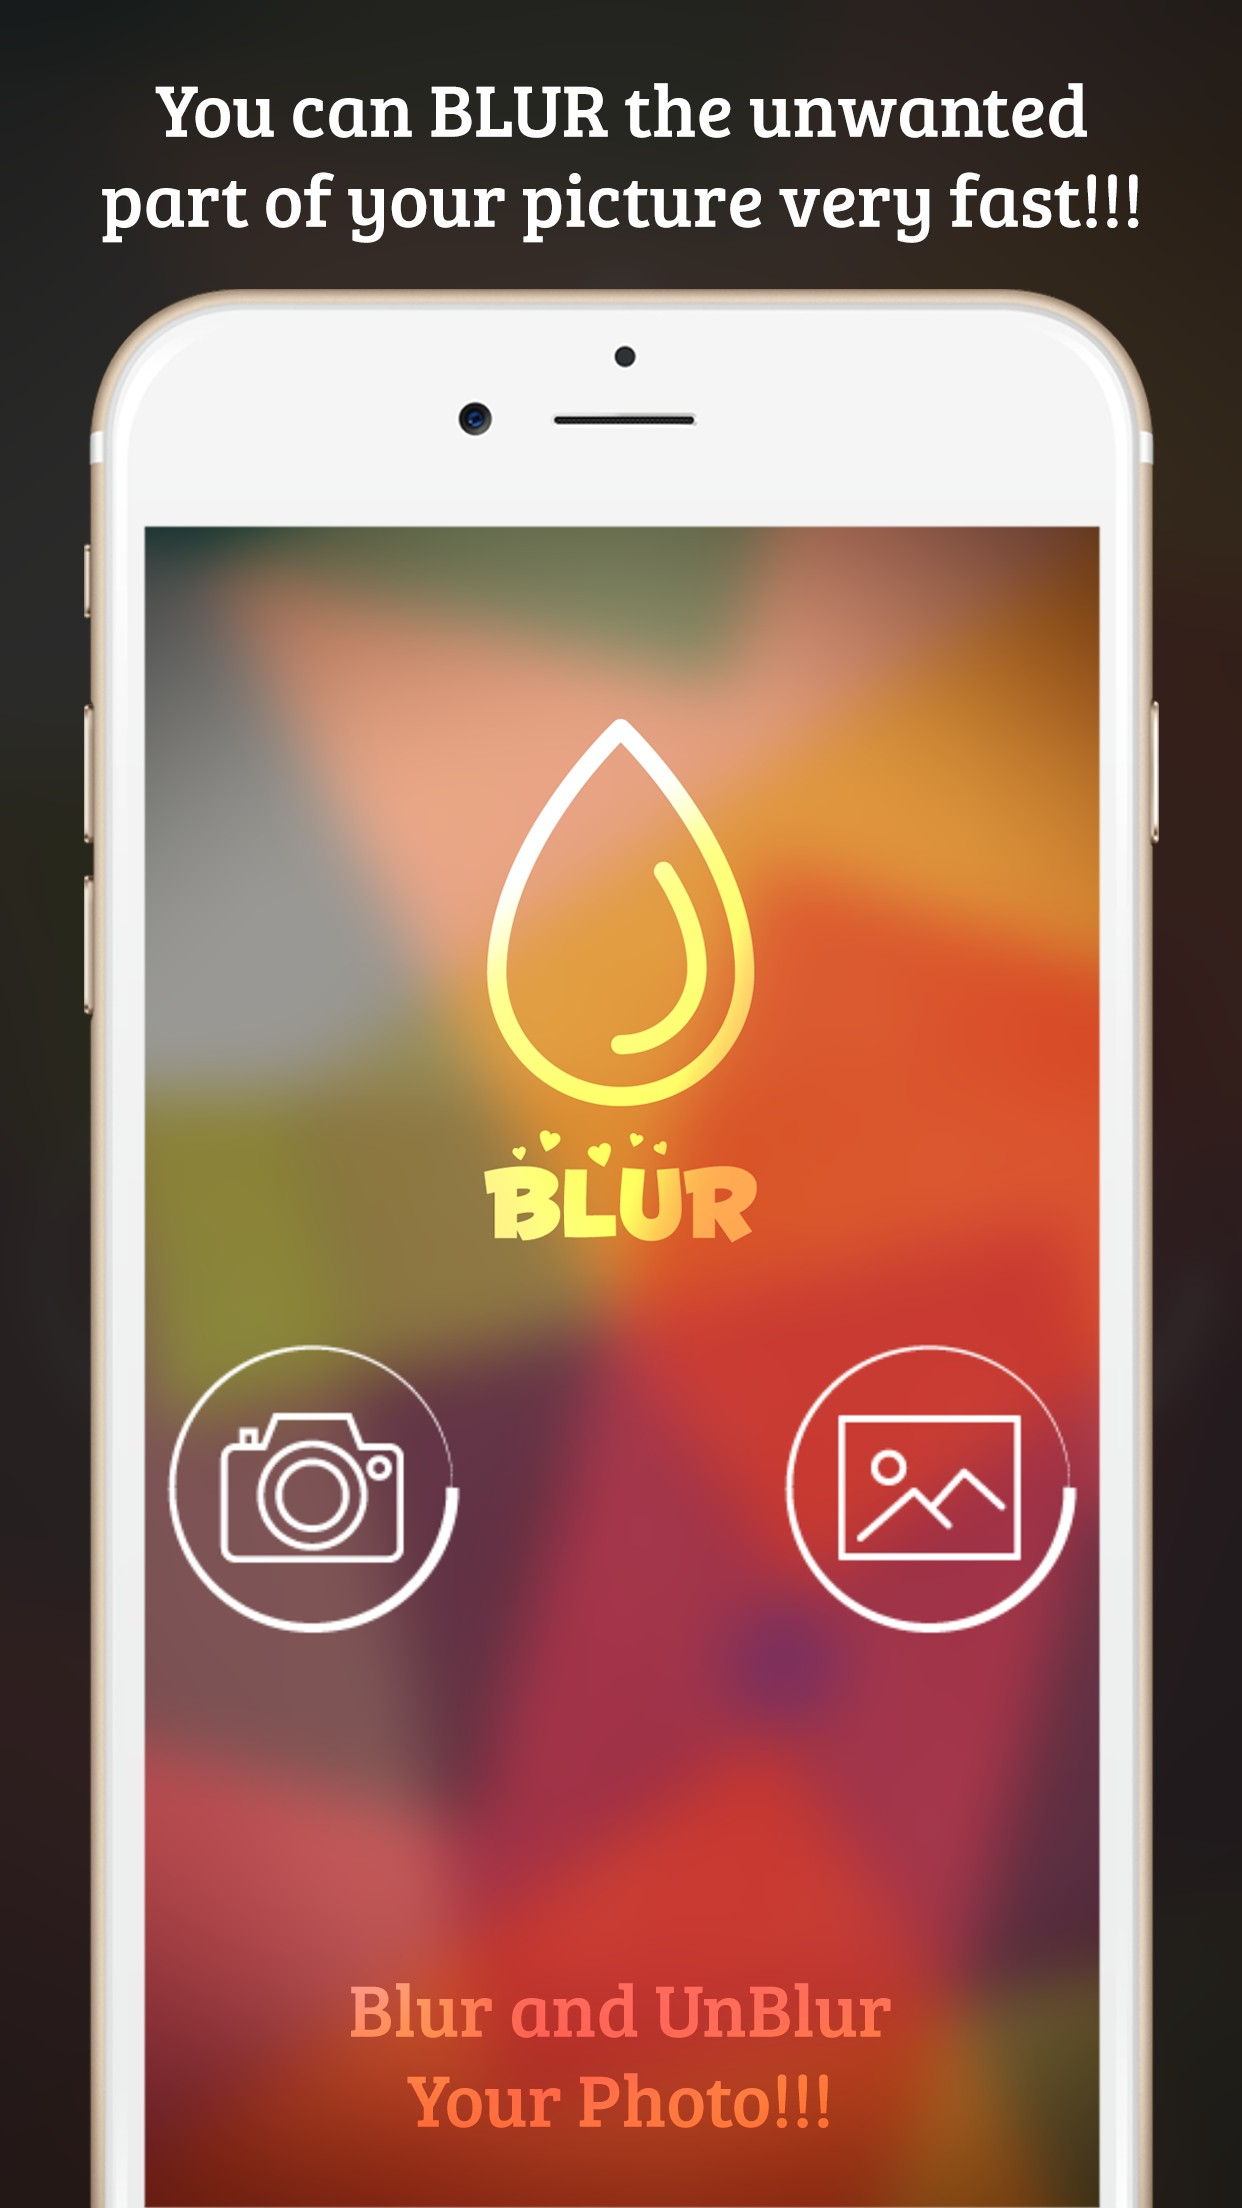 Blur Image Background - Blur Photo Effect